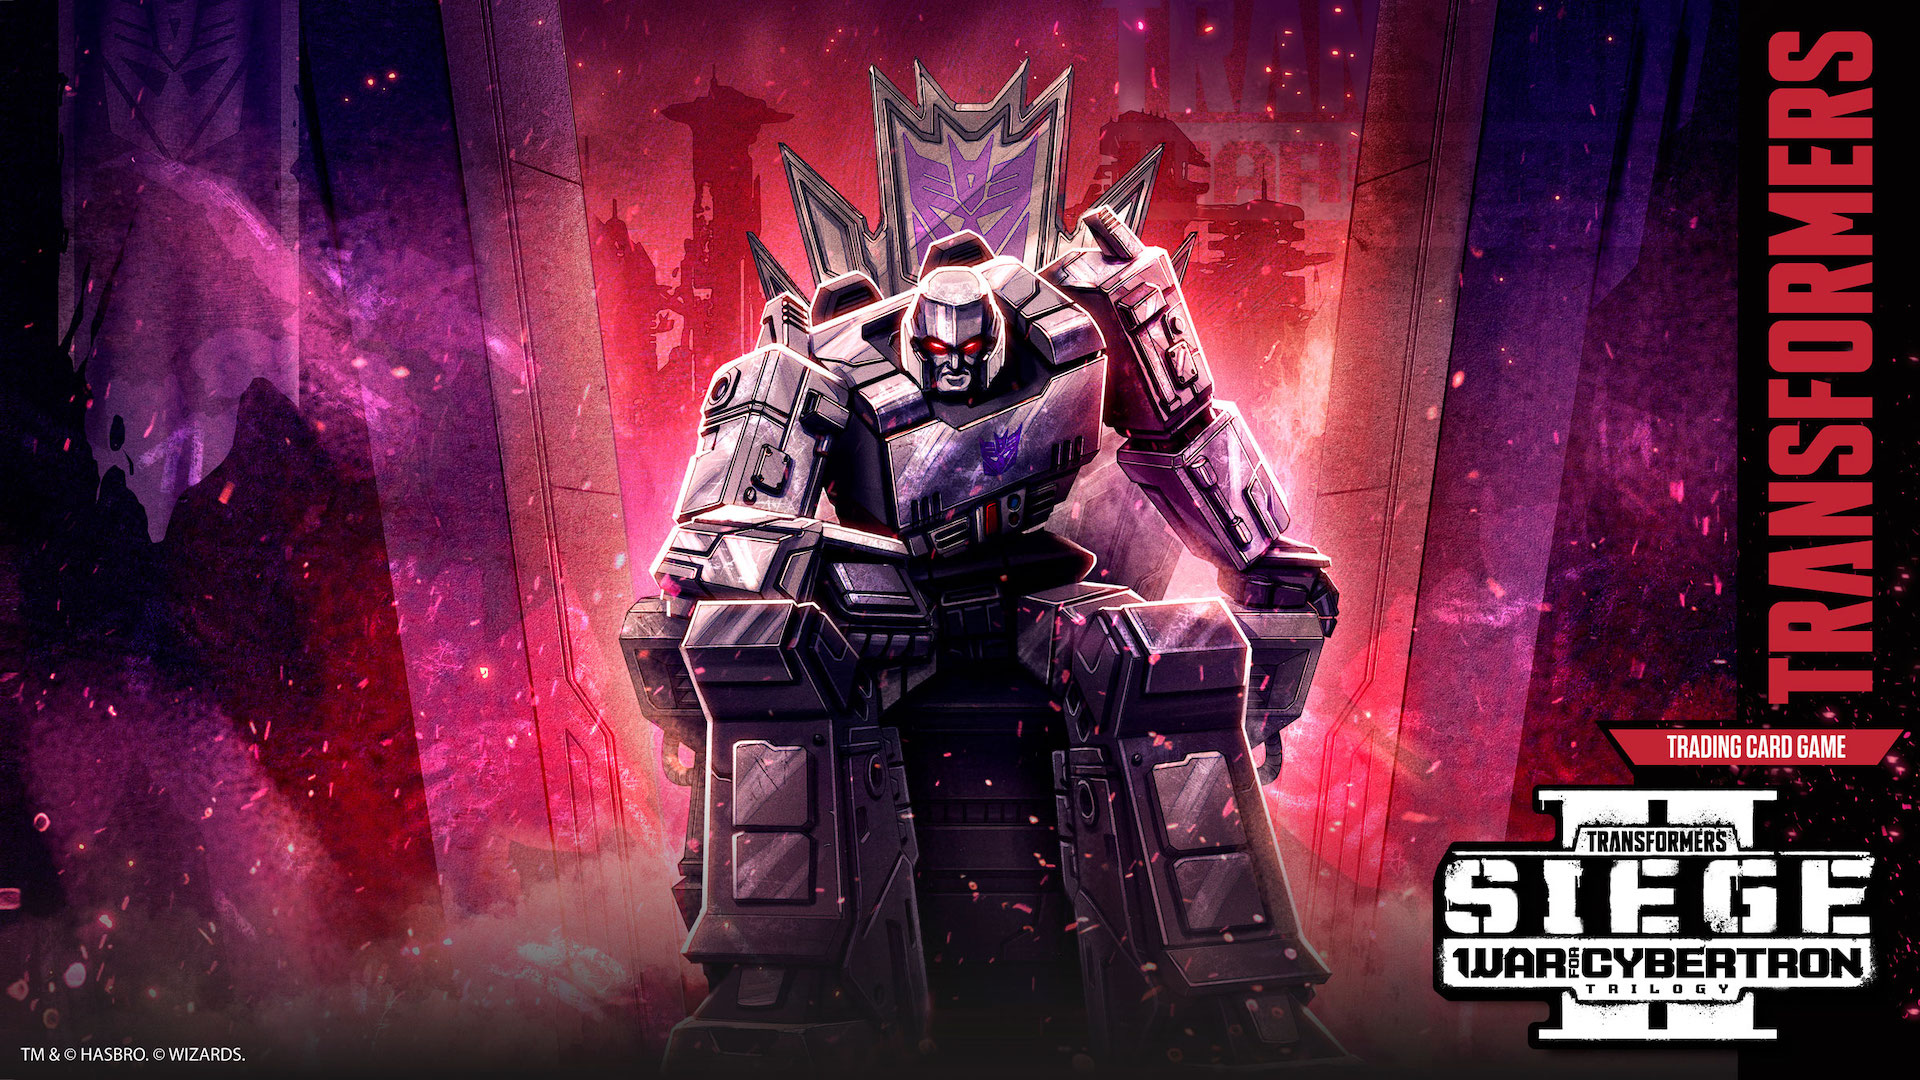 Trypticon and Pals are Coming to 'Transformers TCG' This